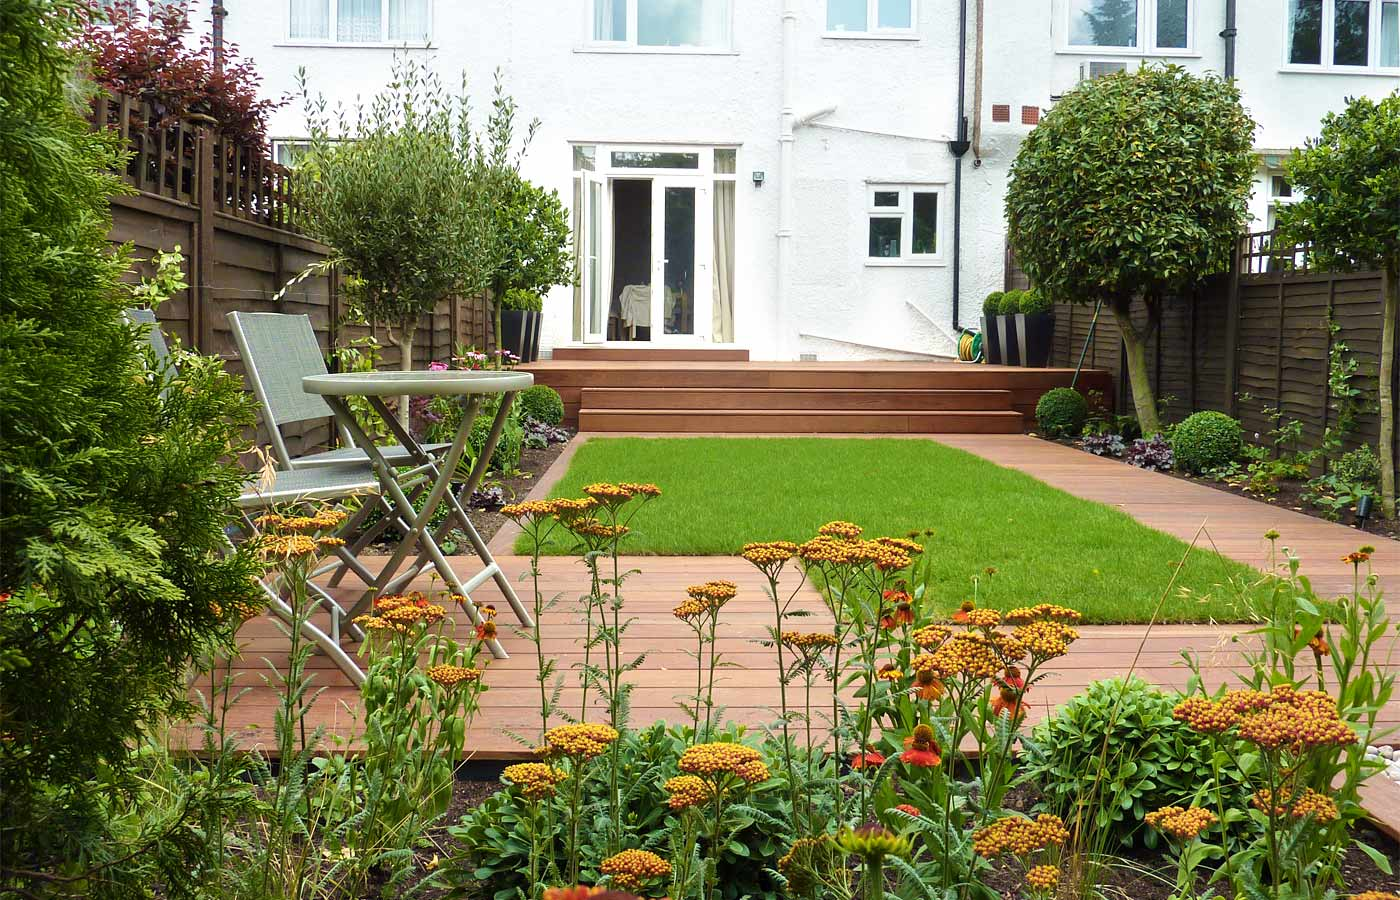 Contemporary garden design london for Contemporary garden design ideas